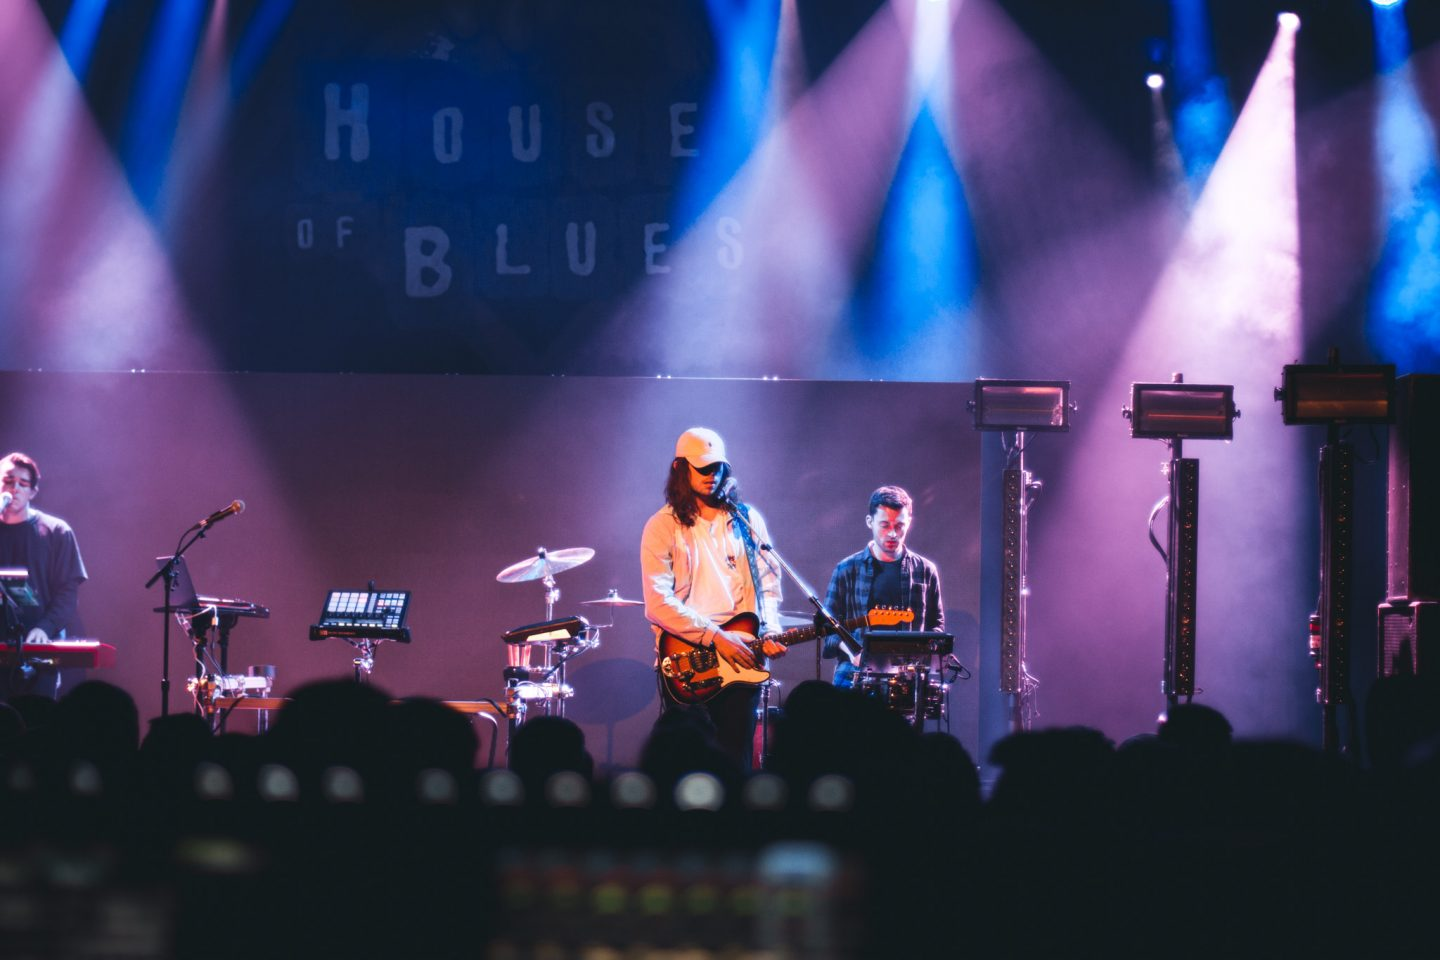 Vancouver Sleep Clinic at House of Blues Chicago by Thomas Bock Photography